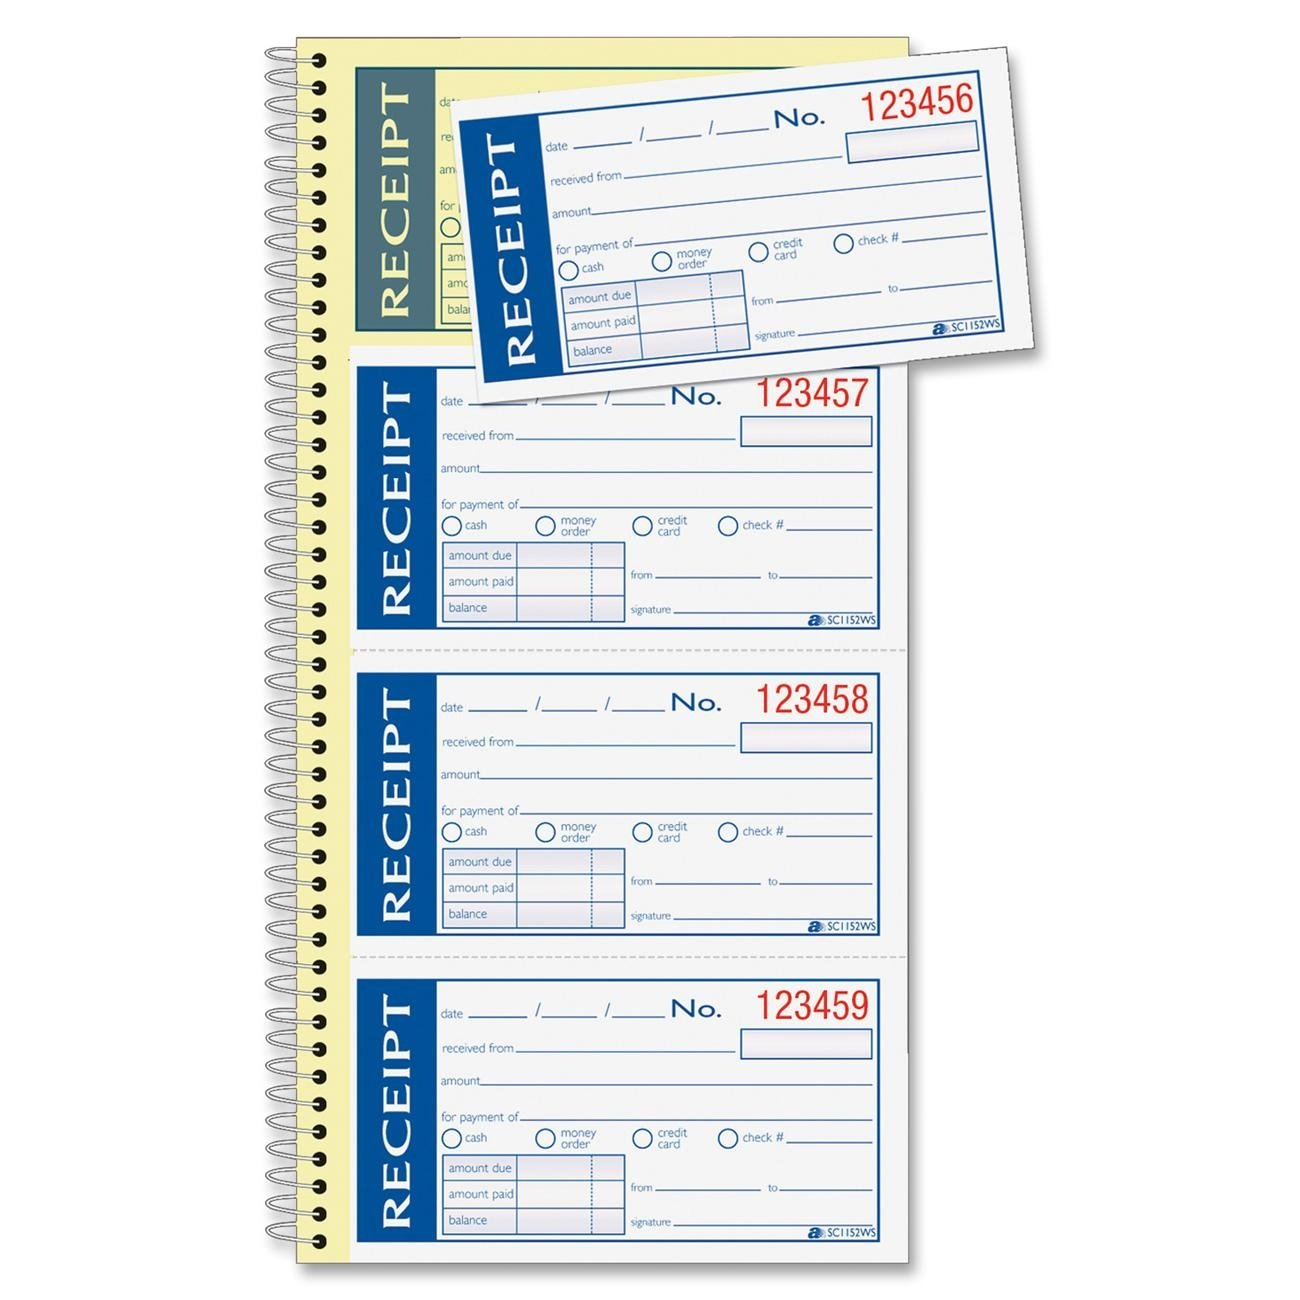 Amazon adams write n stick receipt book whitecanary amazon adams write n stick receipt book whitecanary abfsc1152ws office products pronofoot35fo Images